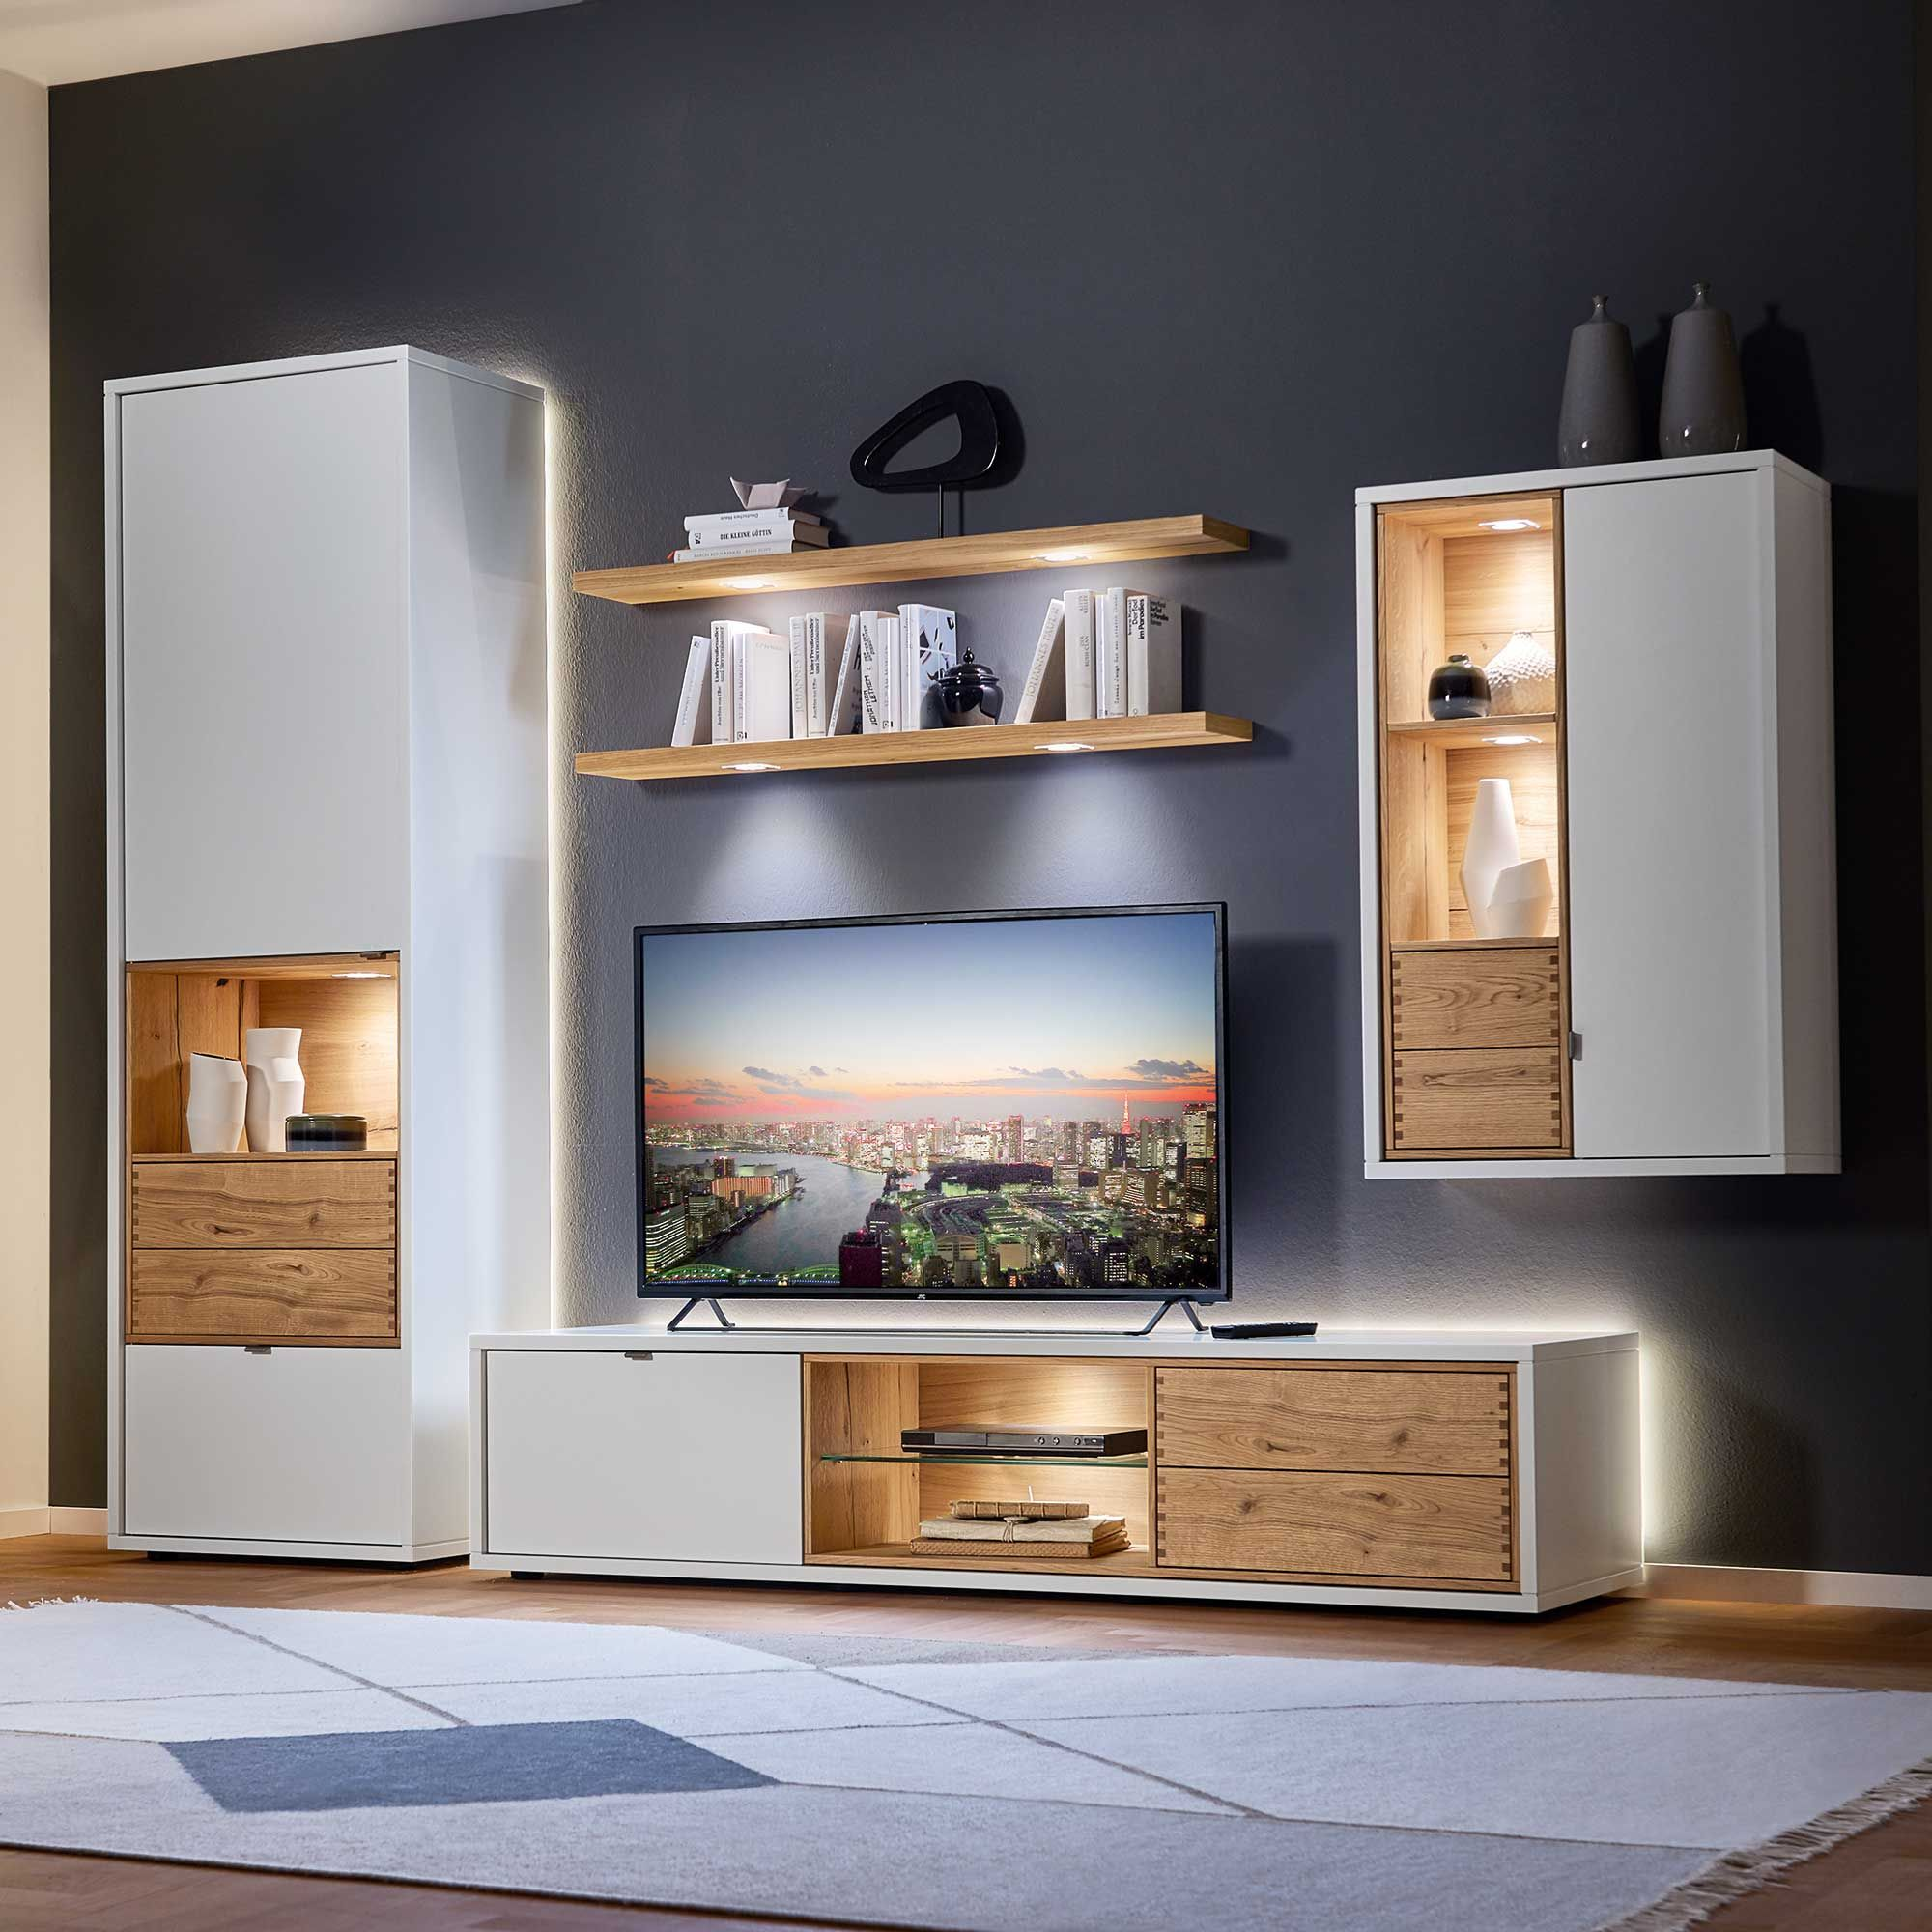 Macao Tv Wall Unit Wall Units Dining Room In 2020 Dining